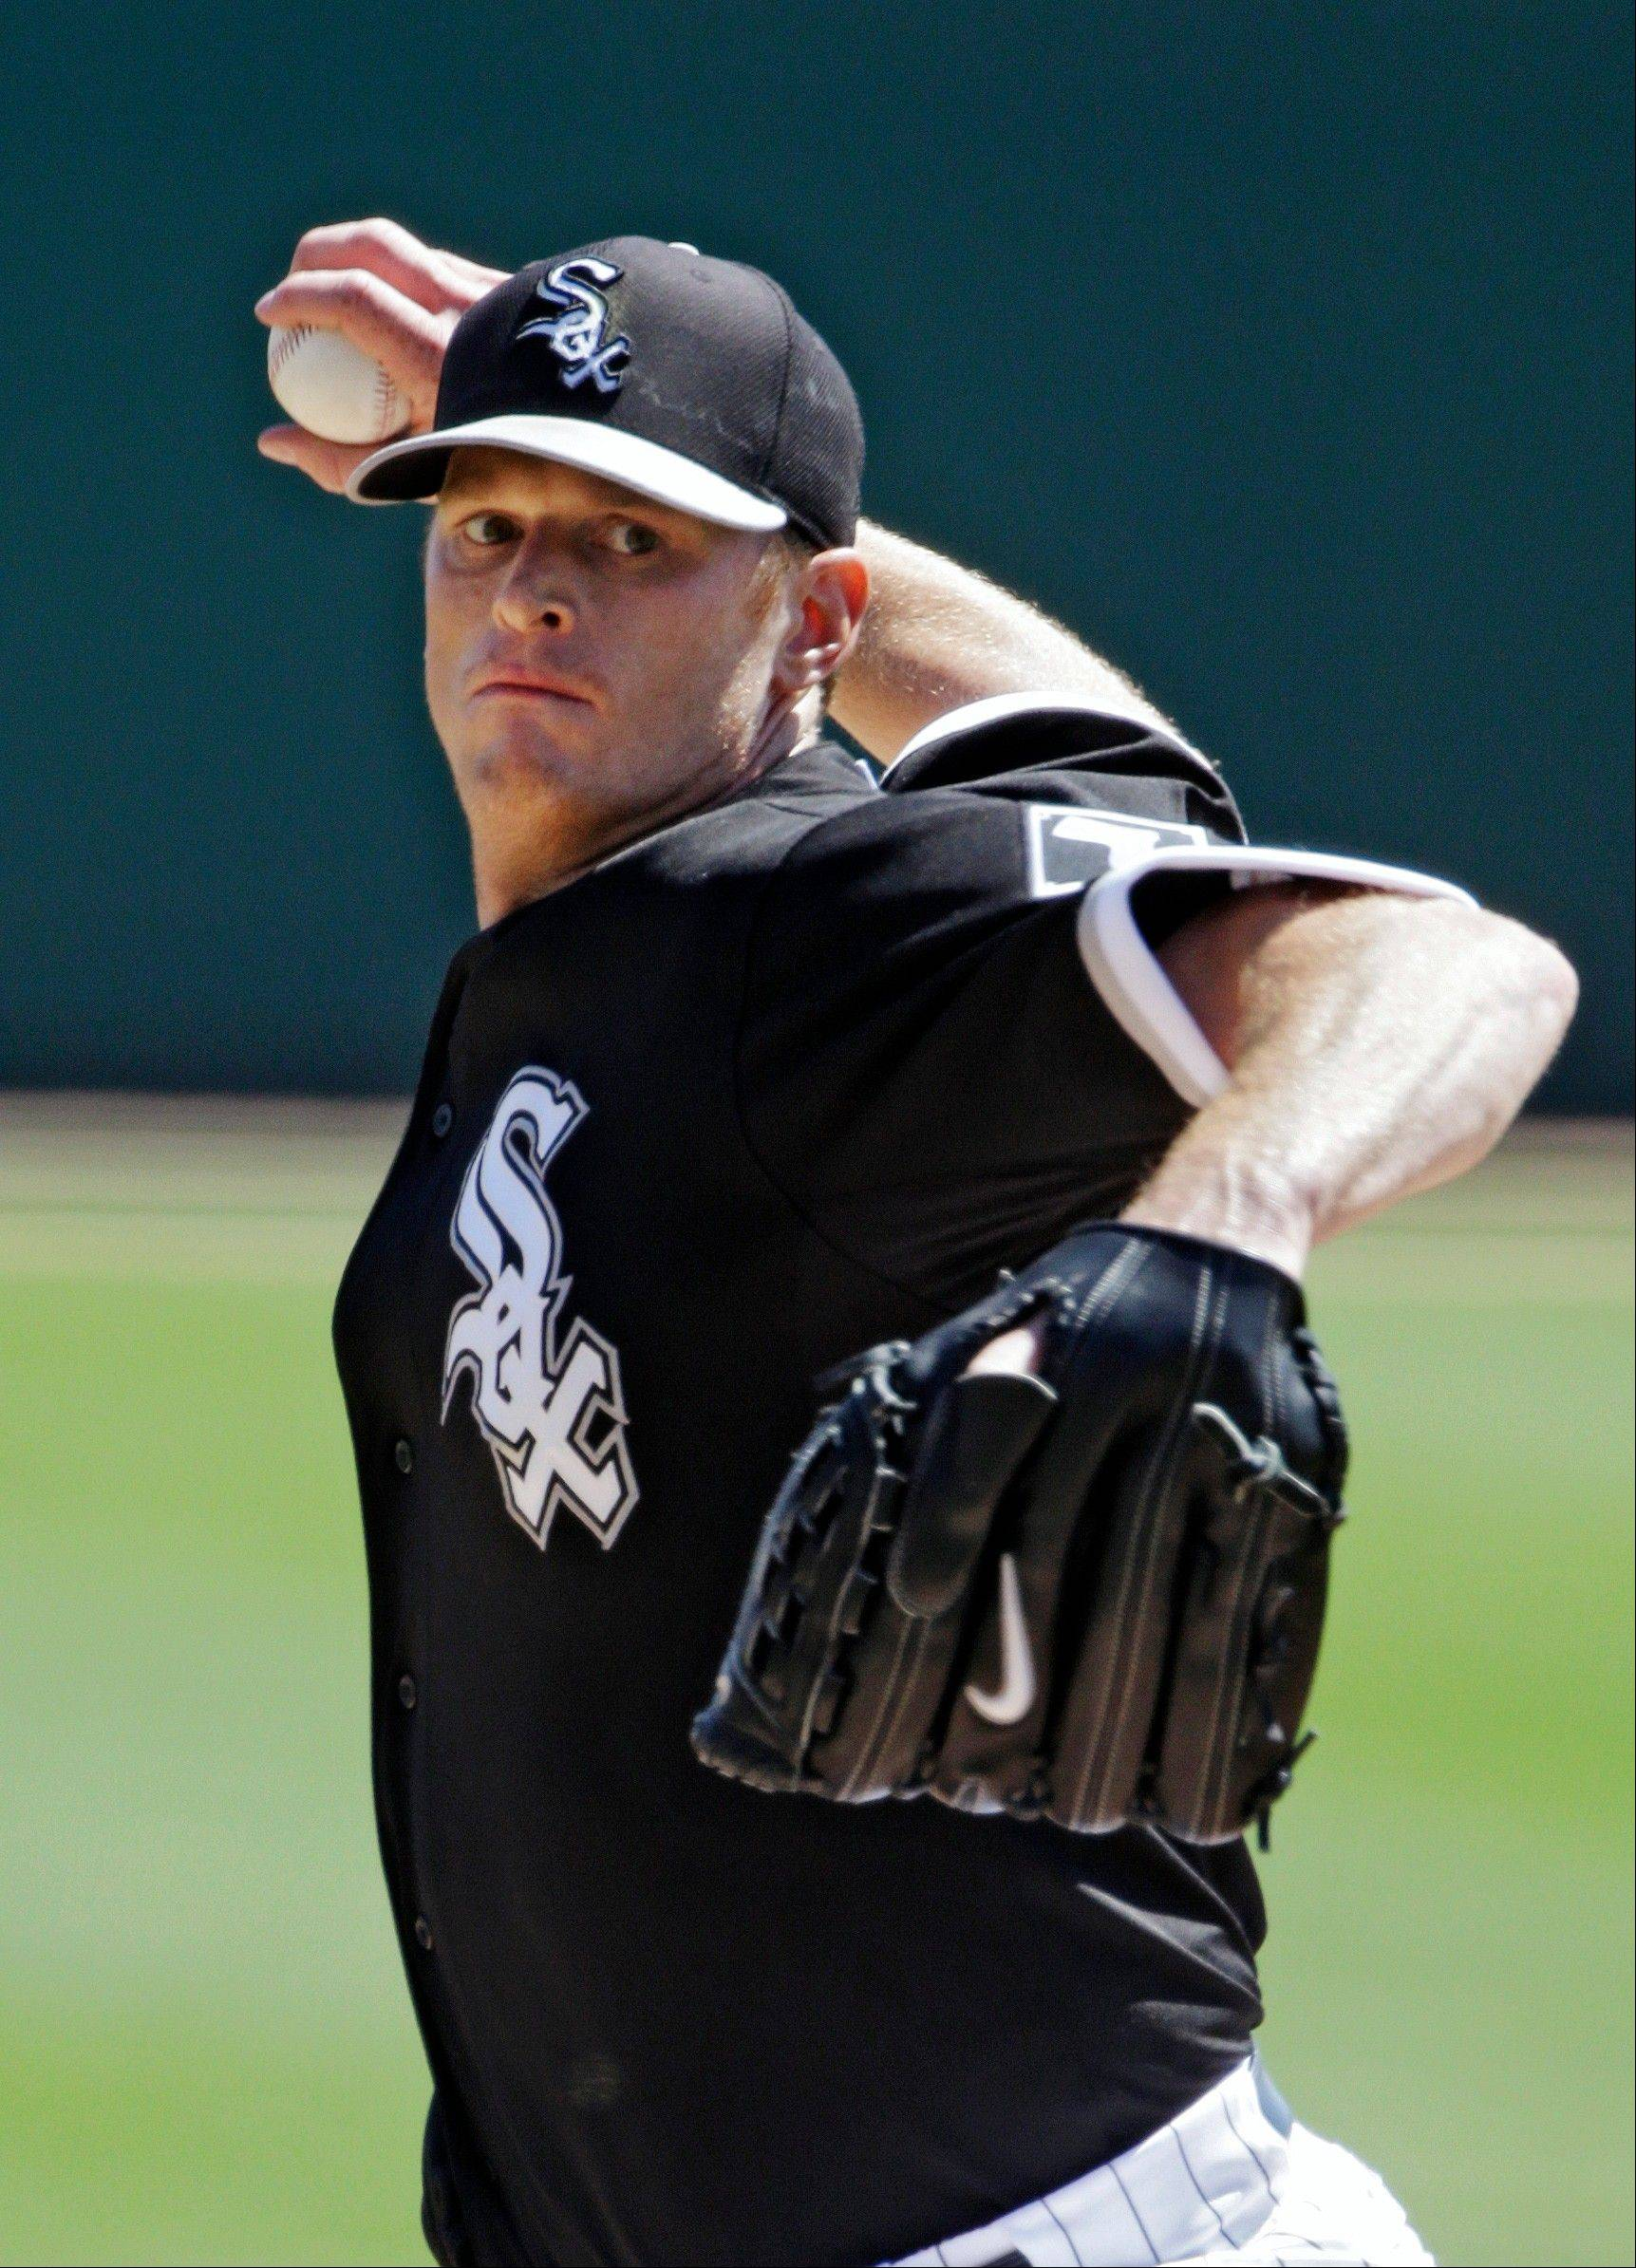 White Sox starting pitcher Gavin Floyd delivers against the Los Angeles Angels in a spring training game in Glendale, Ariz.